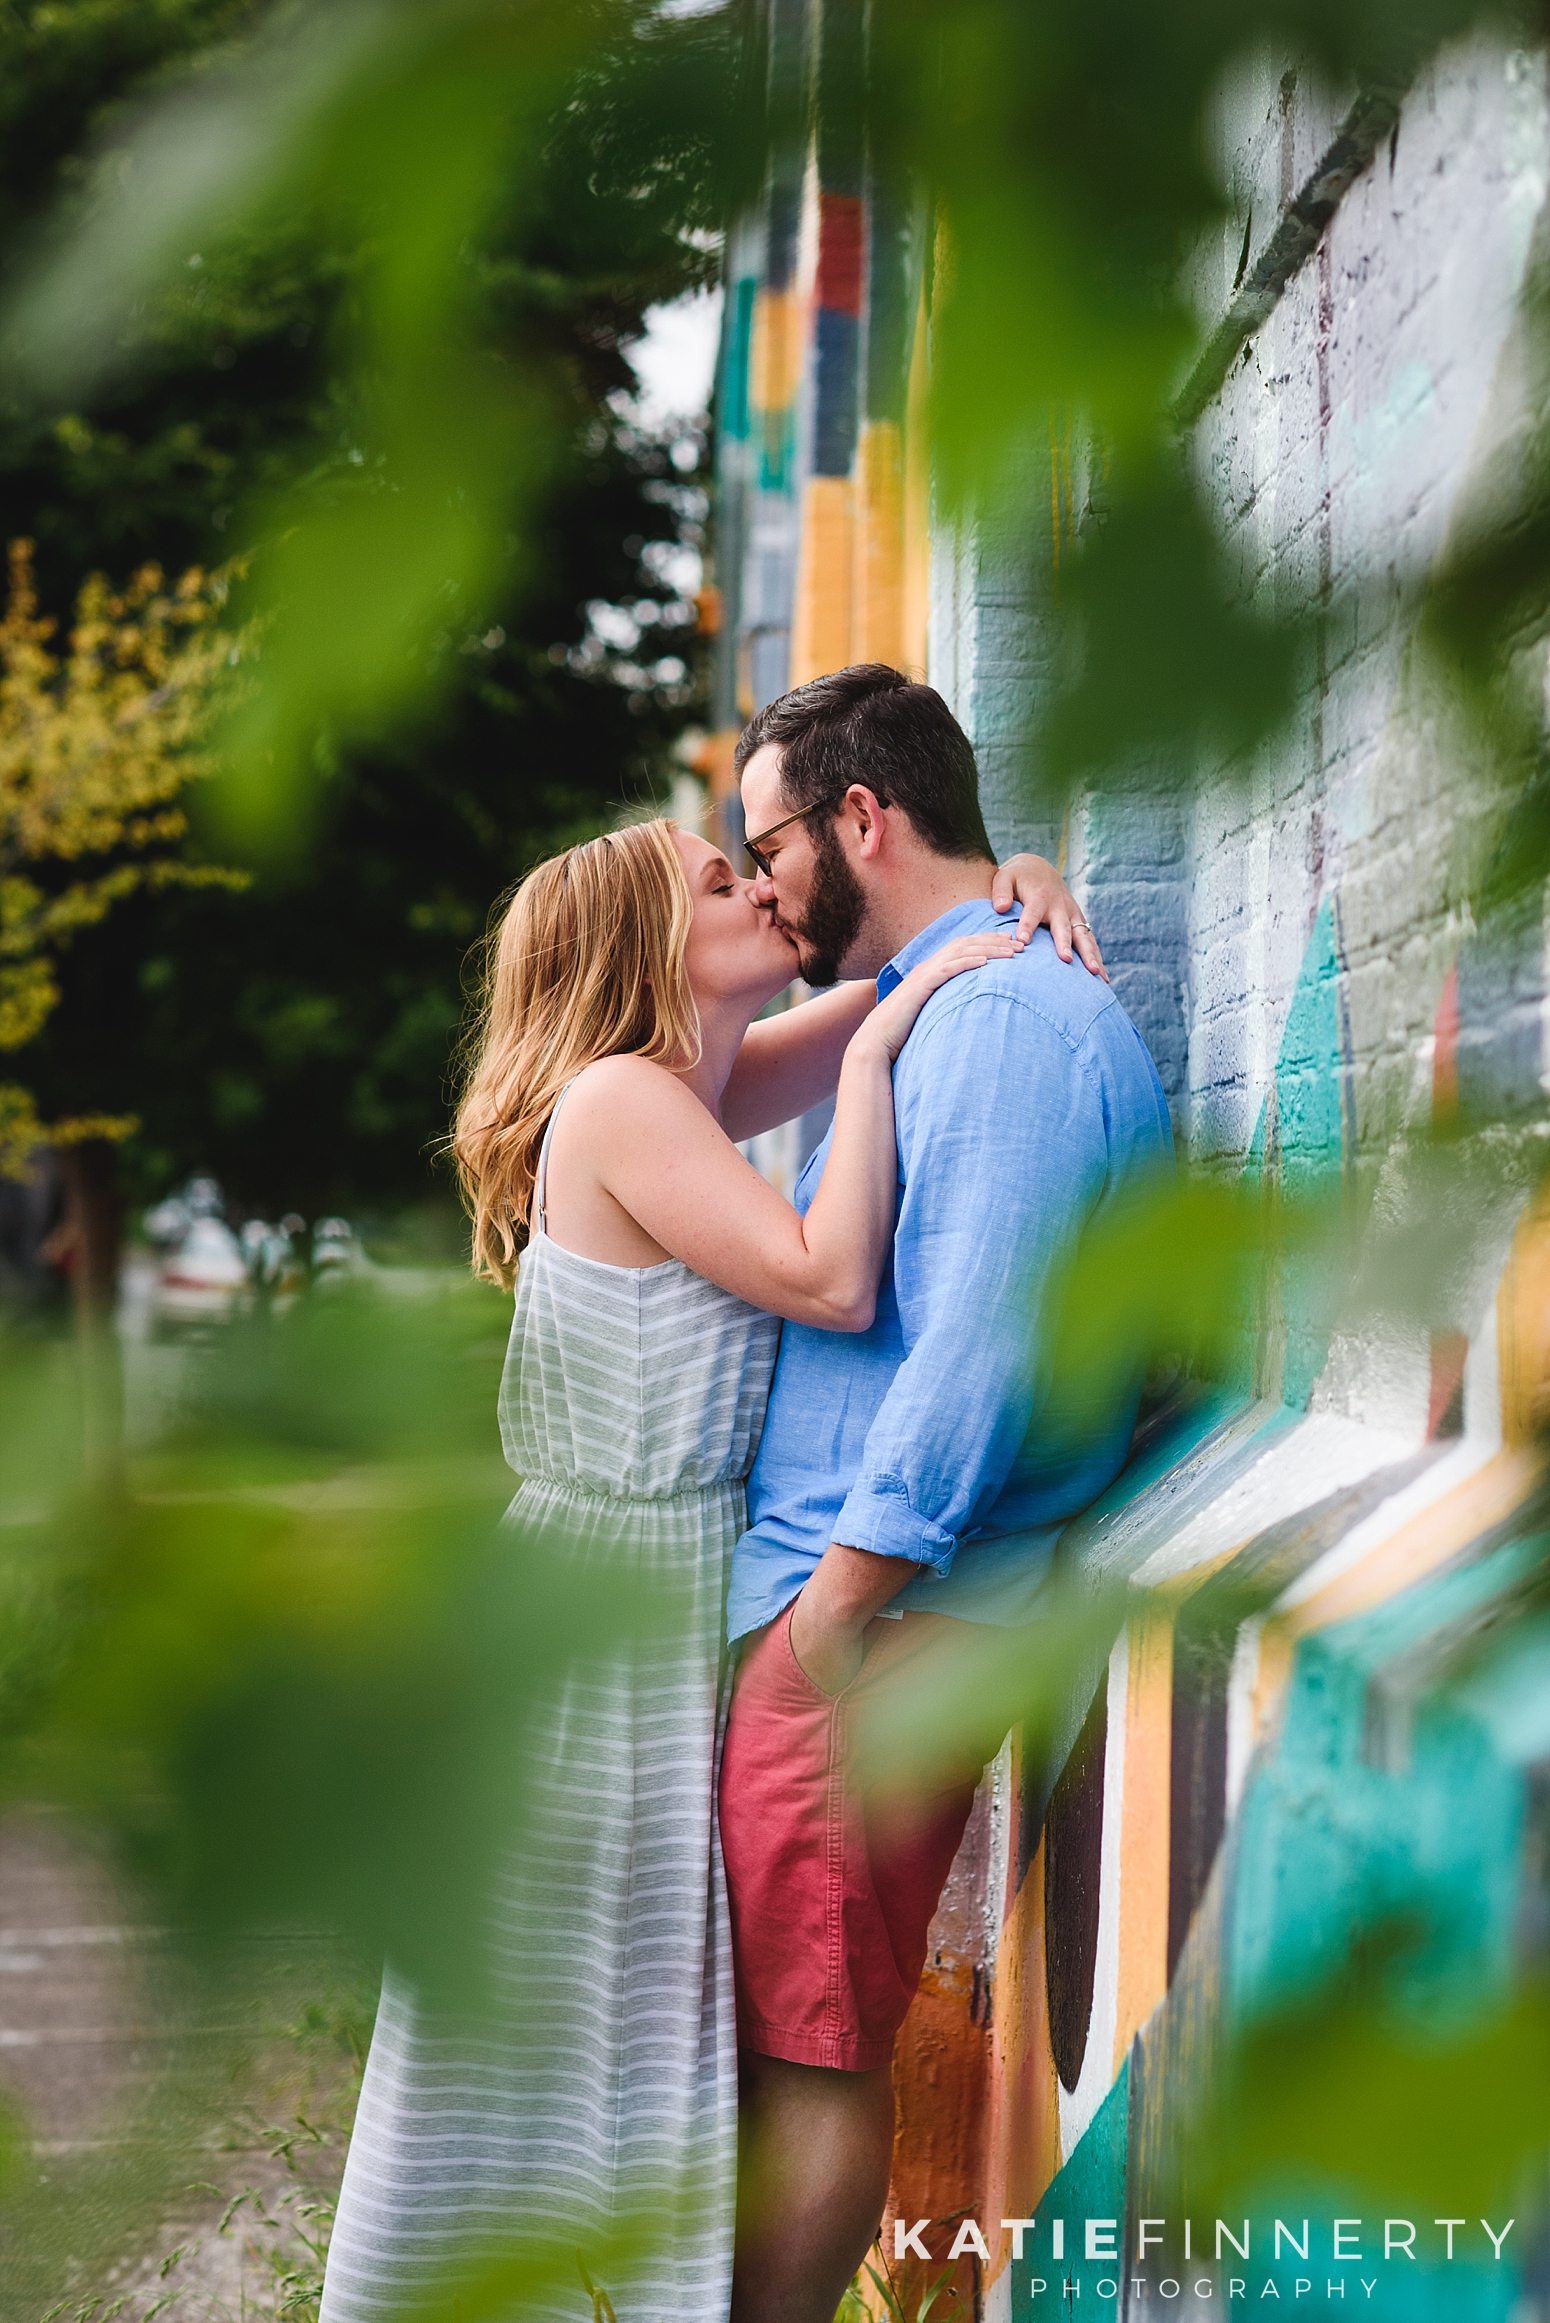 Rochester Street Art Engagement Photography